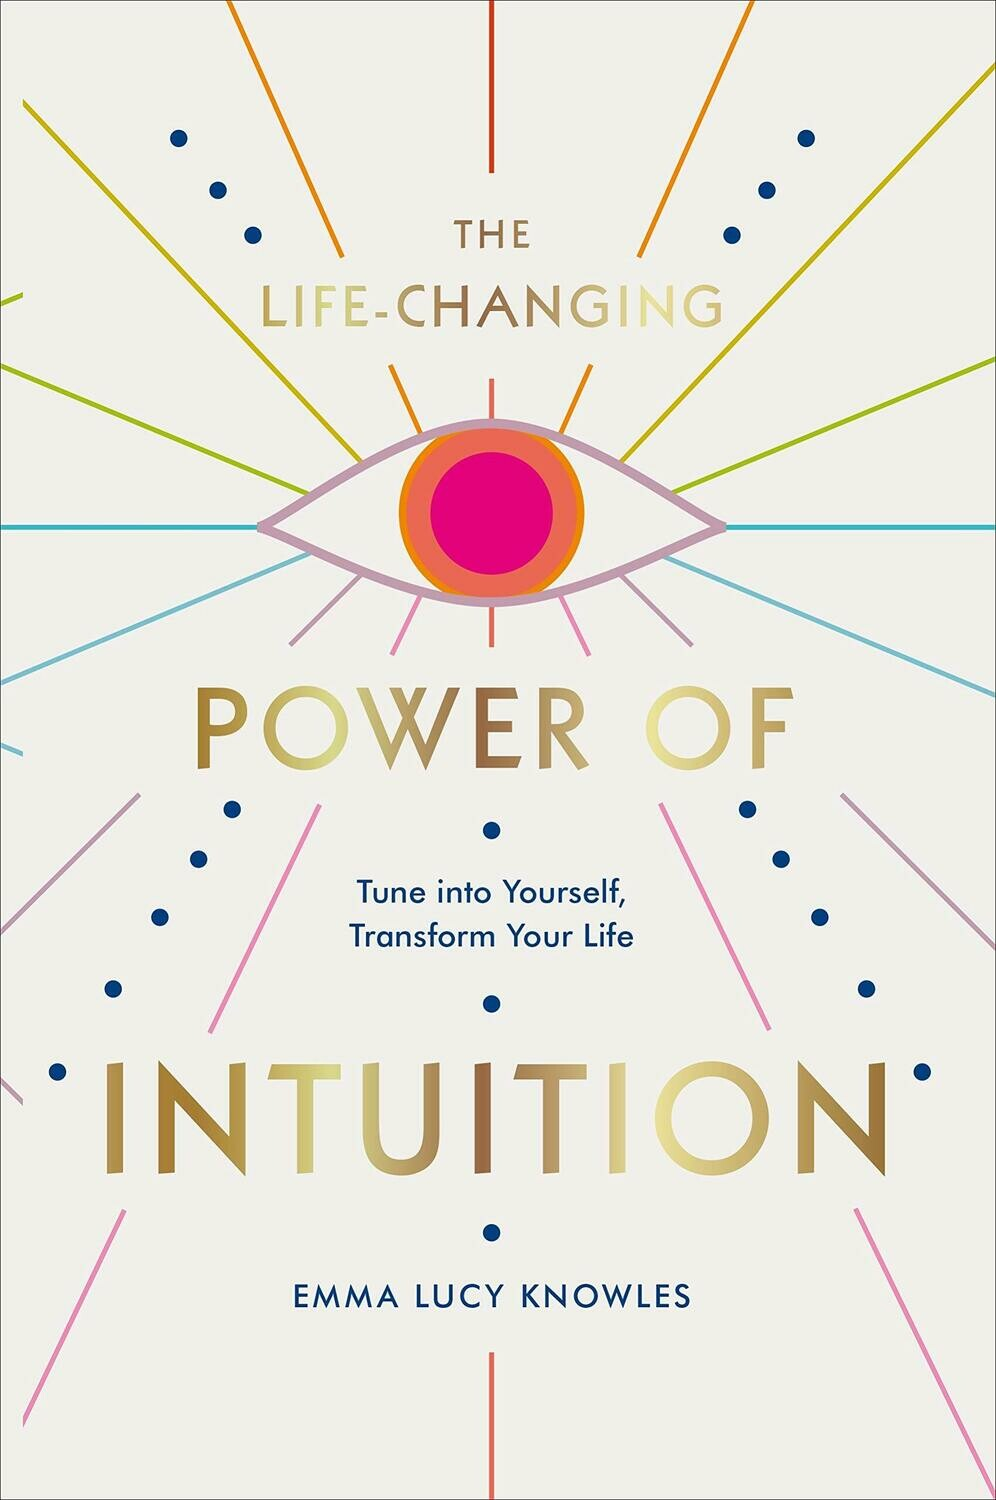 The Life-Changing Power of Intuition: Tune into Yourself, Transform Your Life